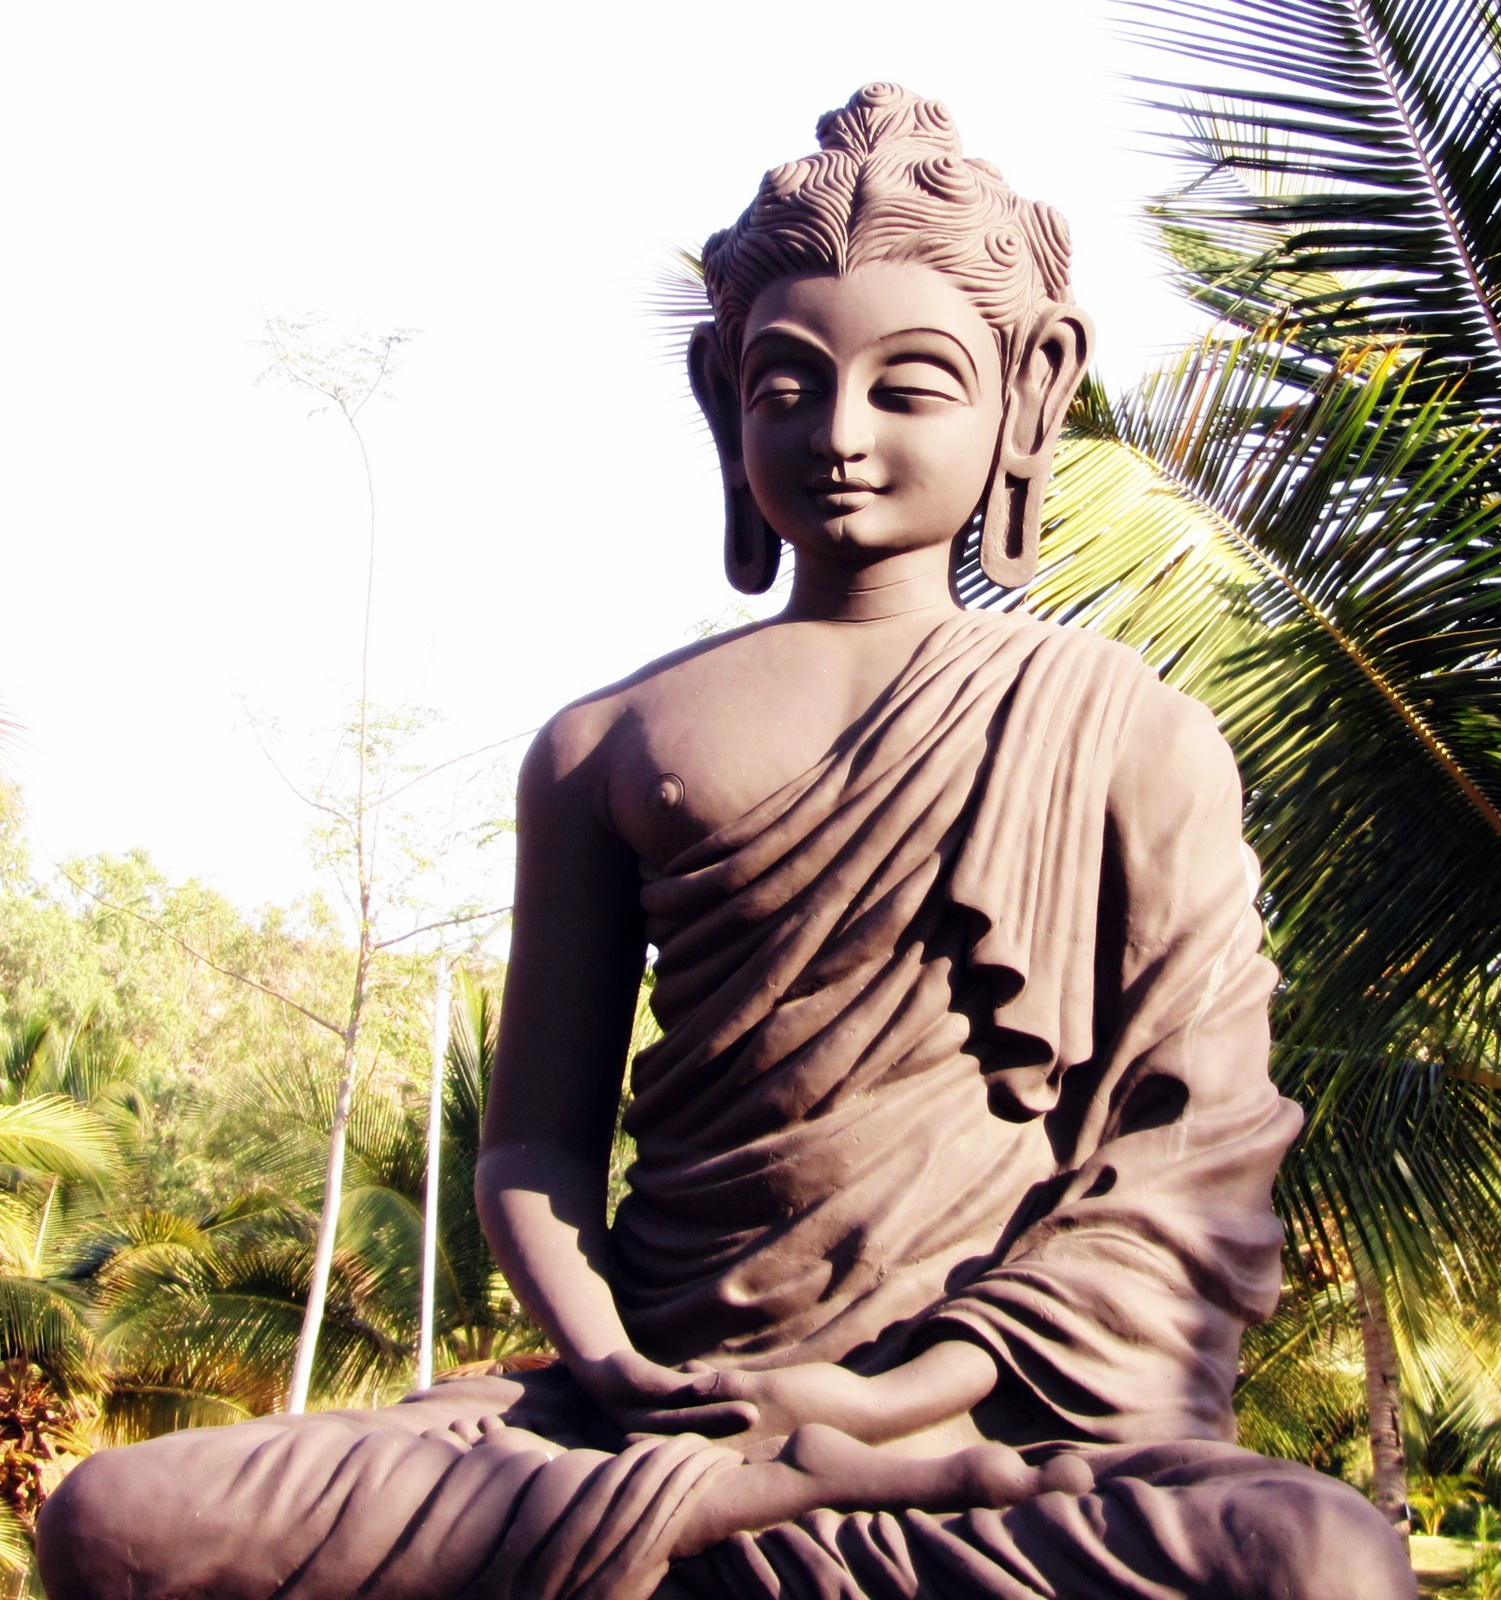 an overview of the brief history of buddhism and siddhartha guatamas work in india The future buddha, siddhartha gautama, was born in the fifth or sixth century bc in lumbini (in modern-day nepal) siddhartha is a sanskrit name meaning one who has accomplished a goal, and gautama is a family name.